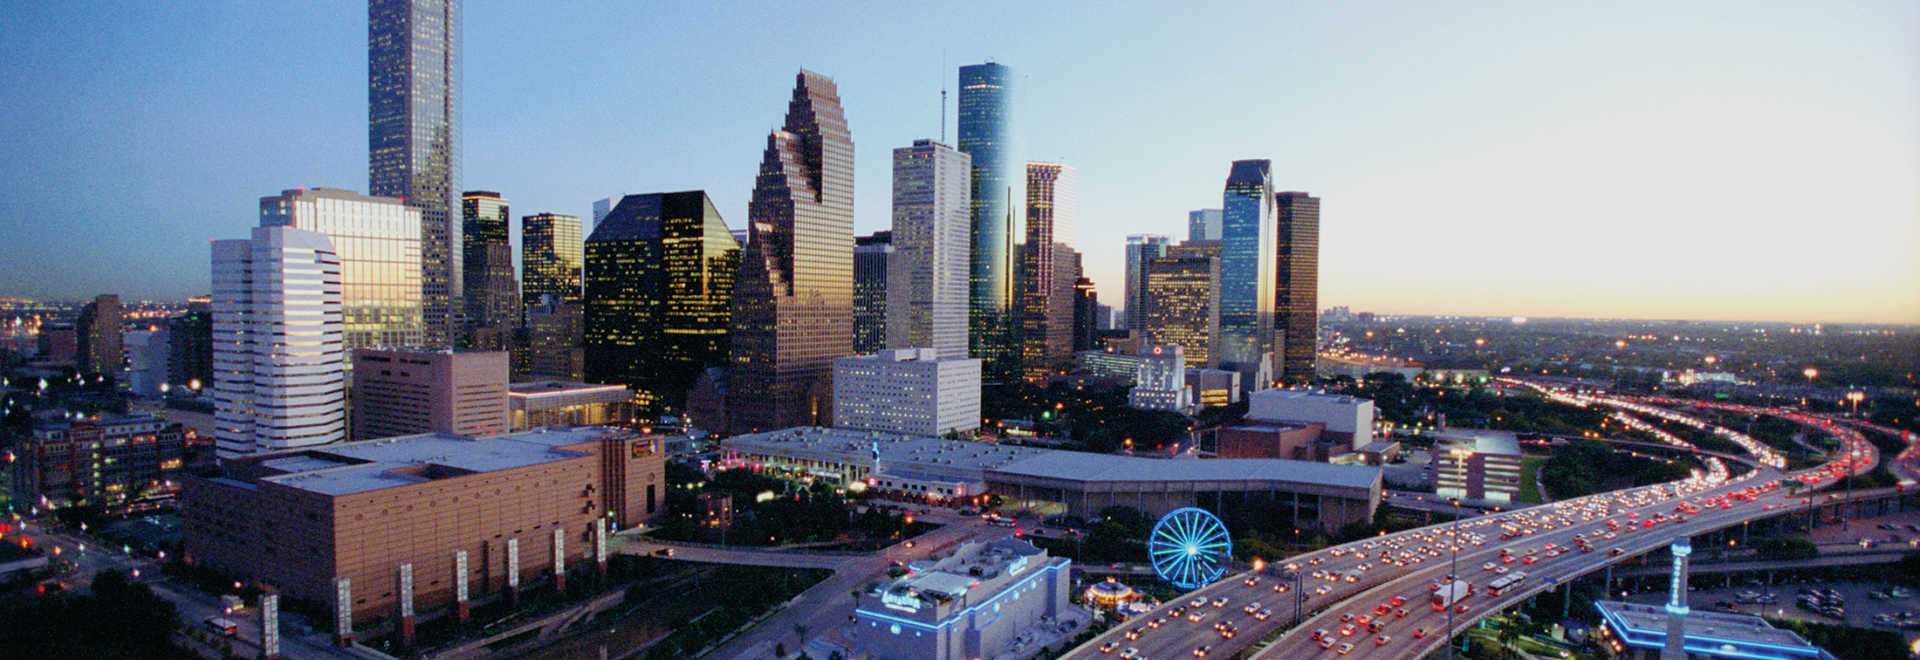 Downtown Houston Skyline at Dusk Getting to